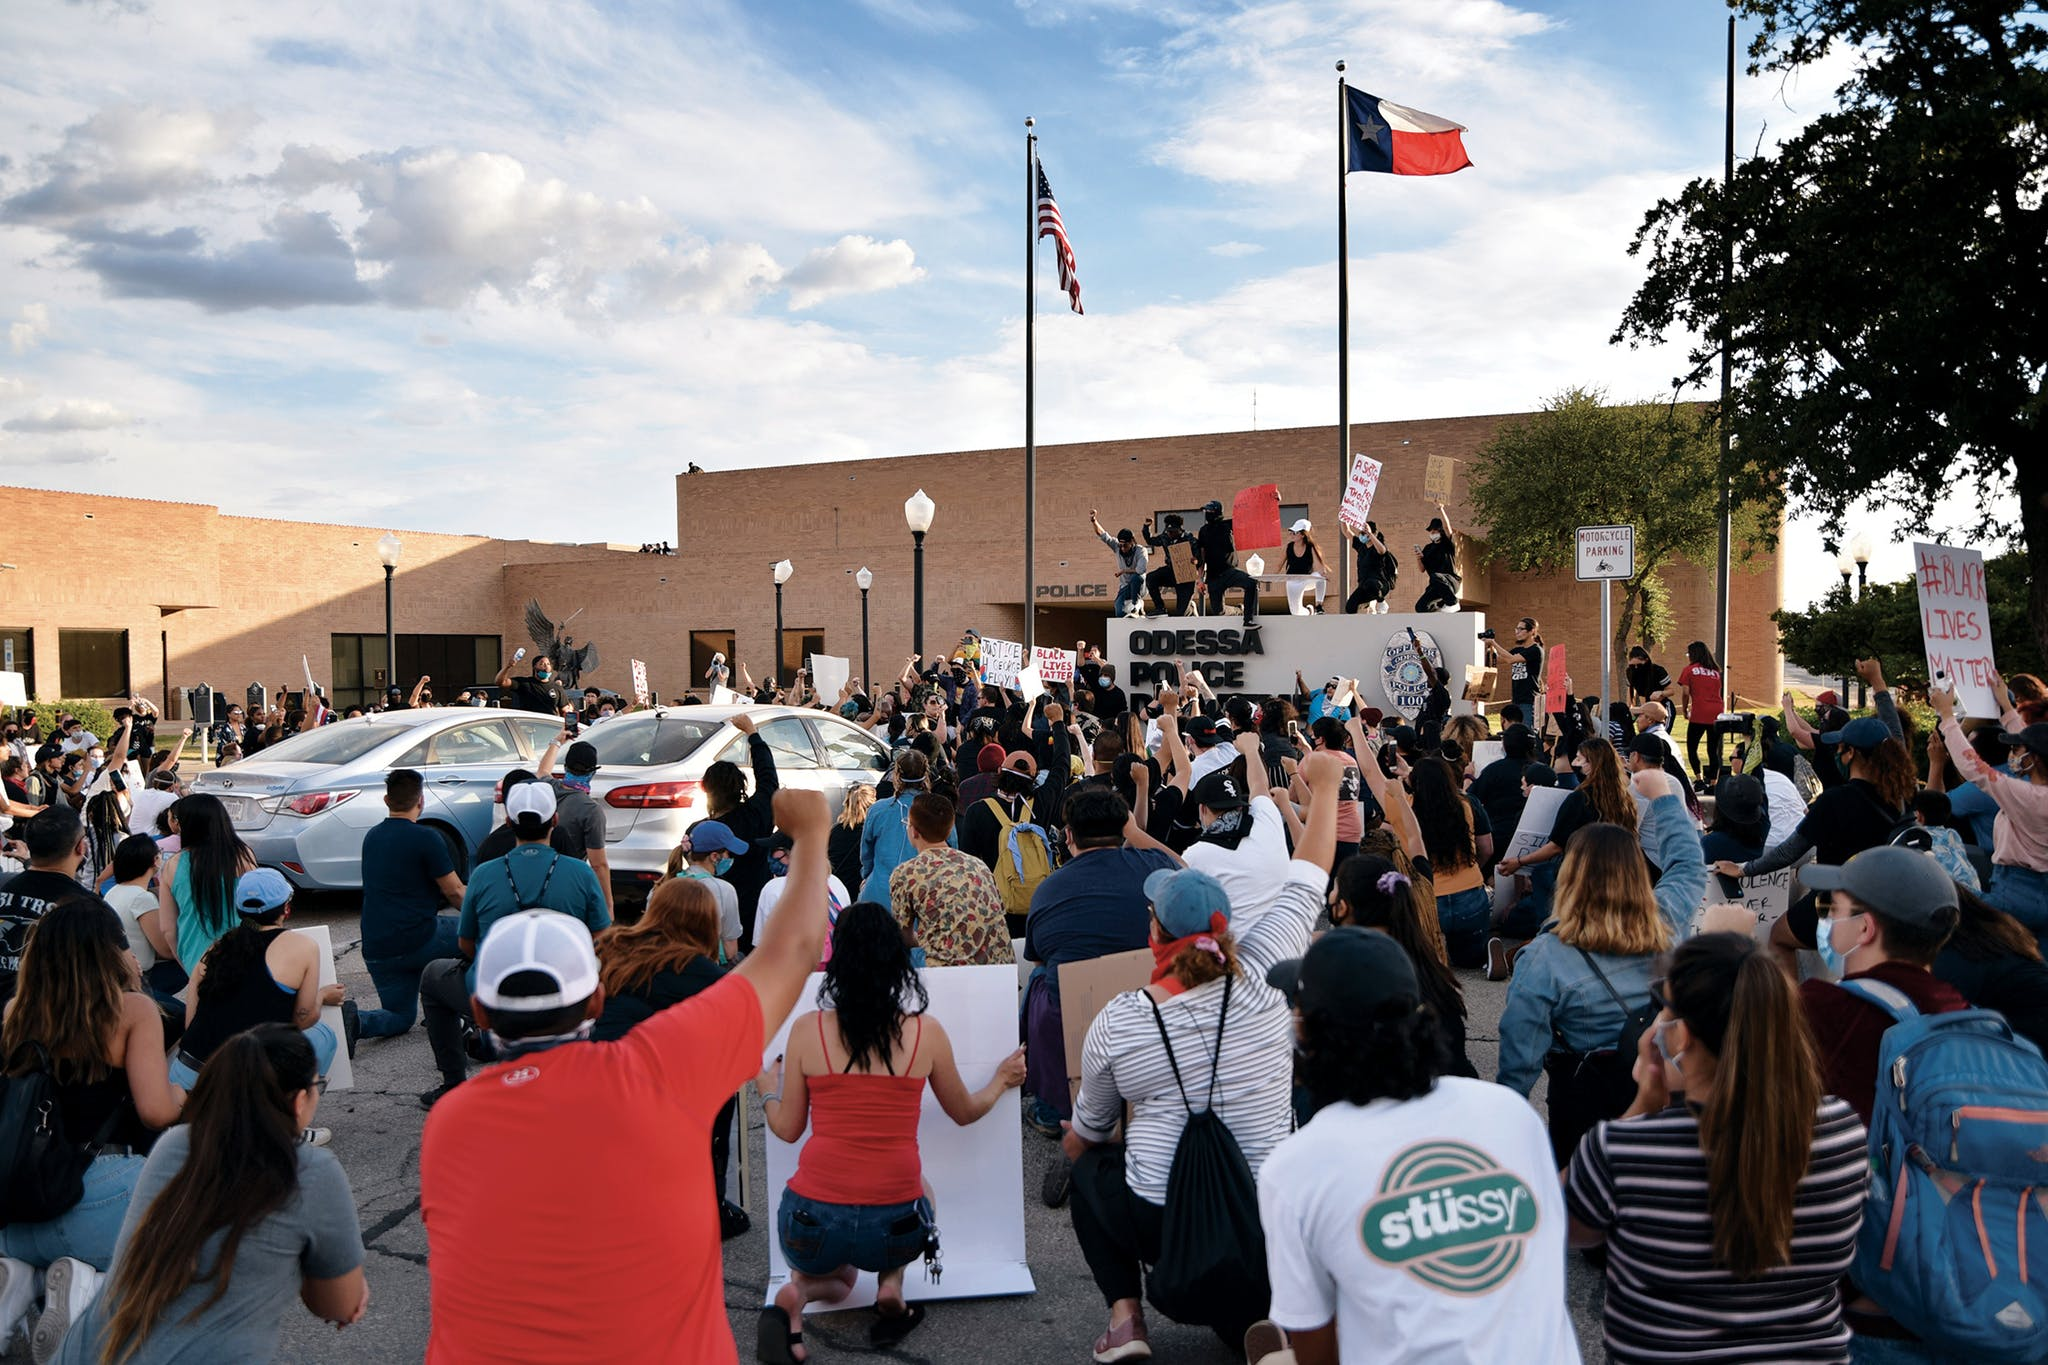 Protesters take a knee outside of the Odessa Police Department during a Black Lives Matter protest in Odessa on May 31, 2020, following the death of George Floyd on May 25.